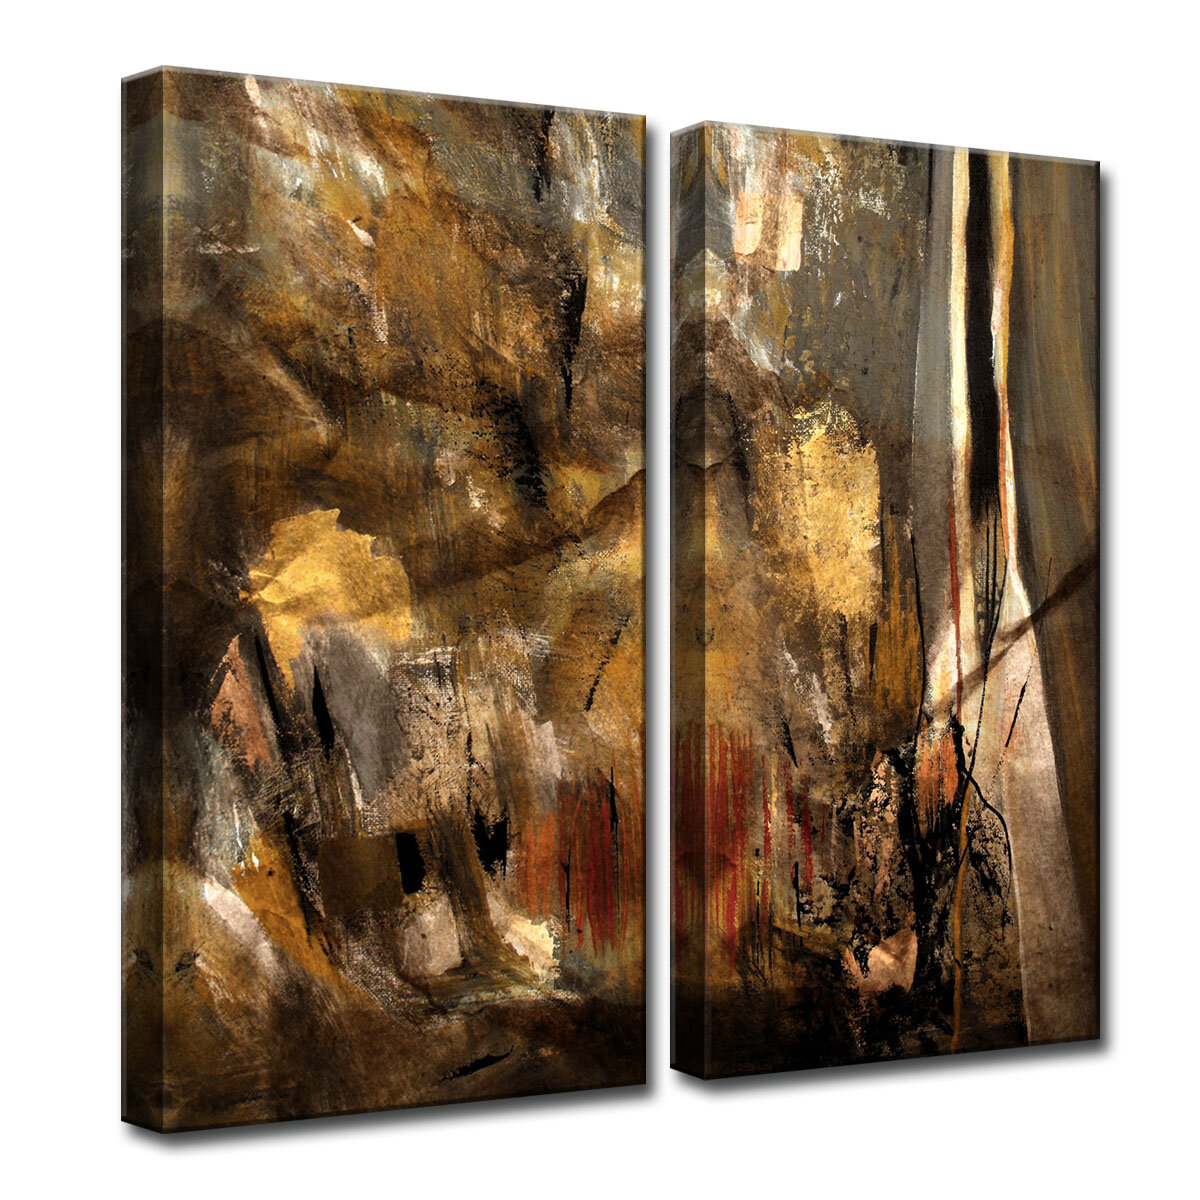 Wrought Studio Earth Tone Abstract I By Tristan Scott 2 Piece Wrapped Canvas Print Set Reviews Wayfair